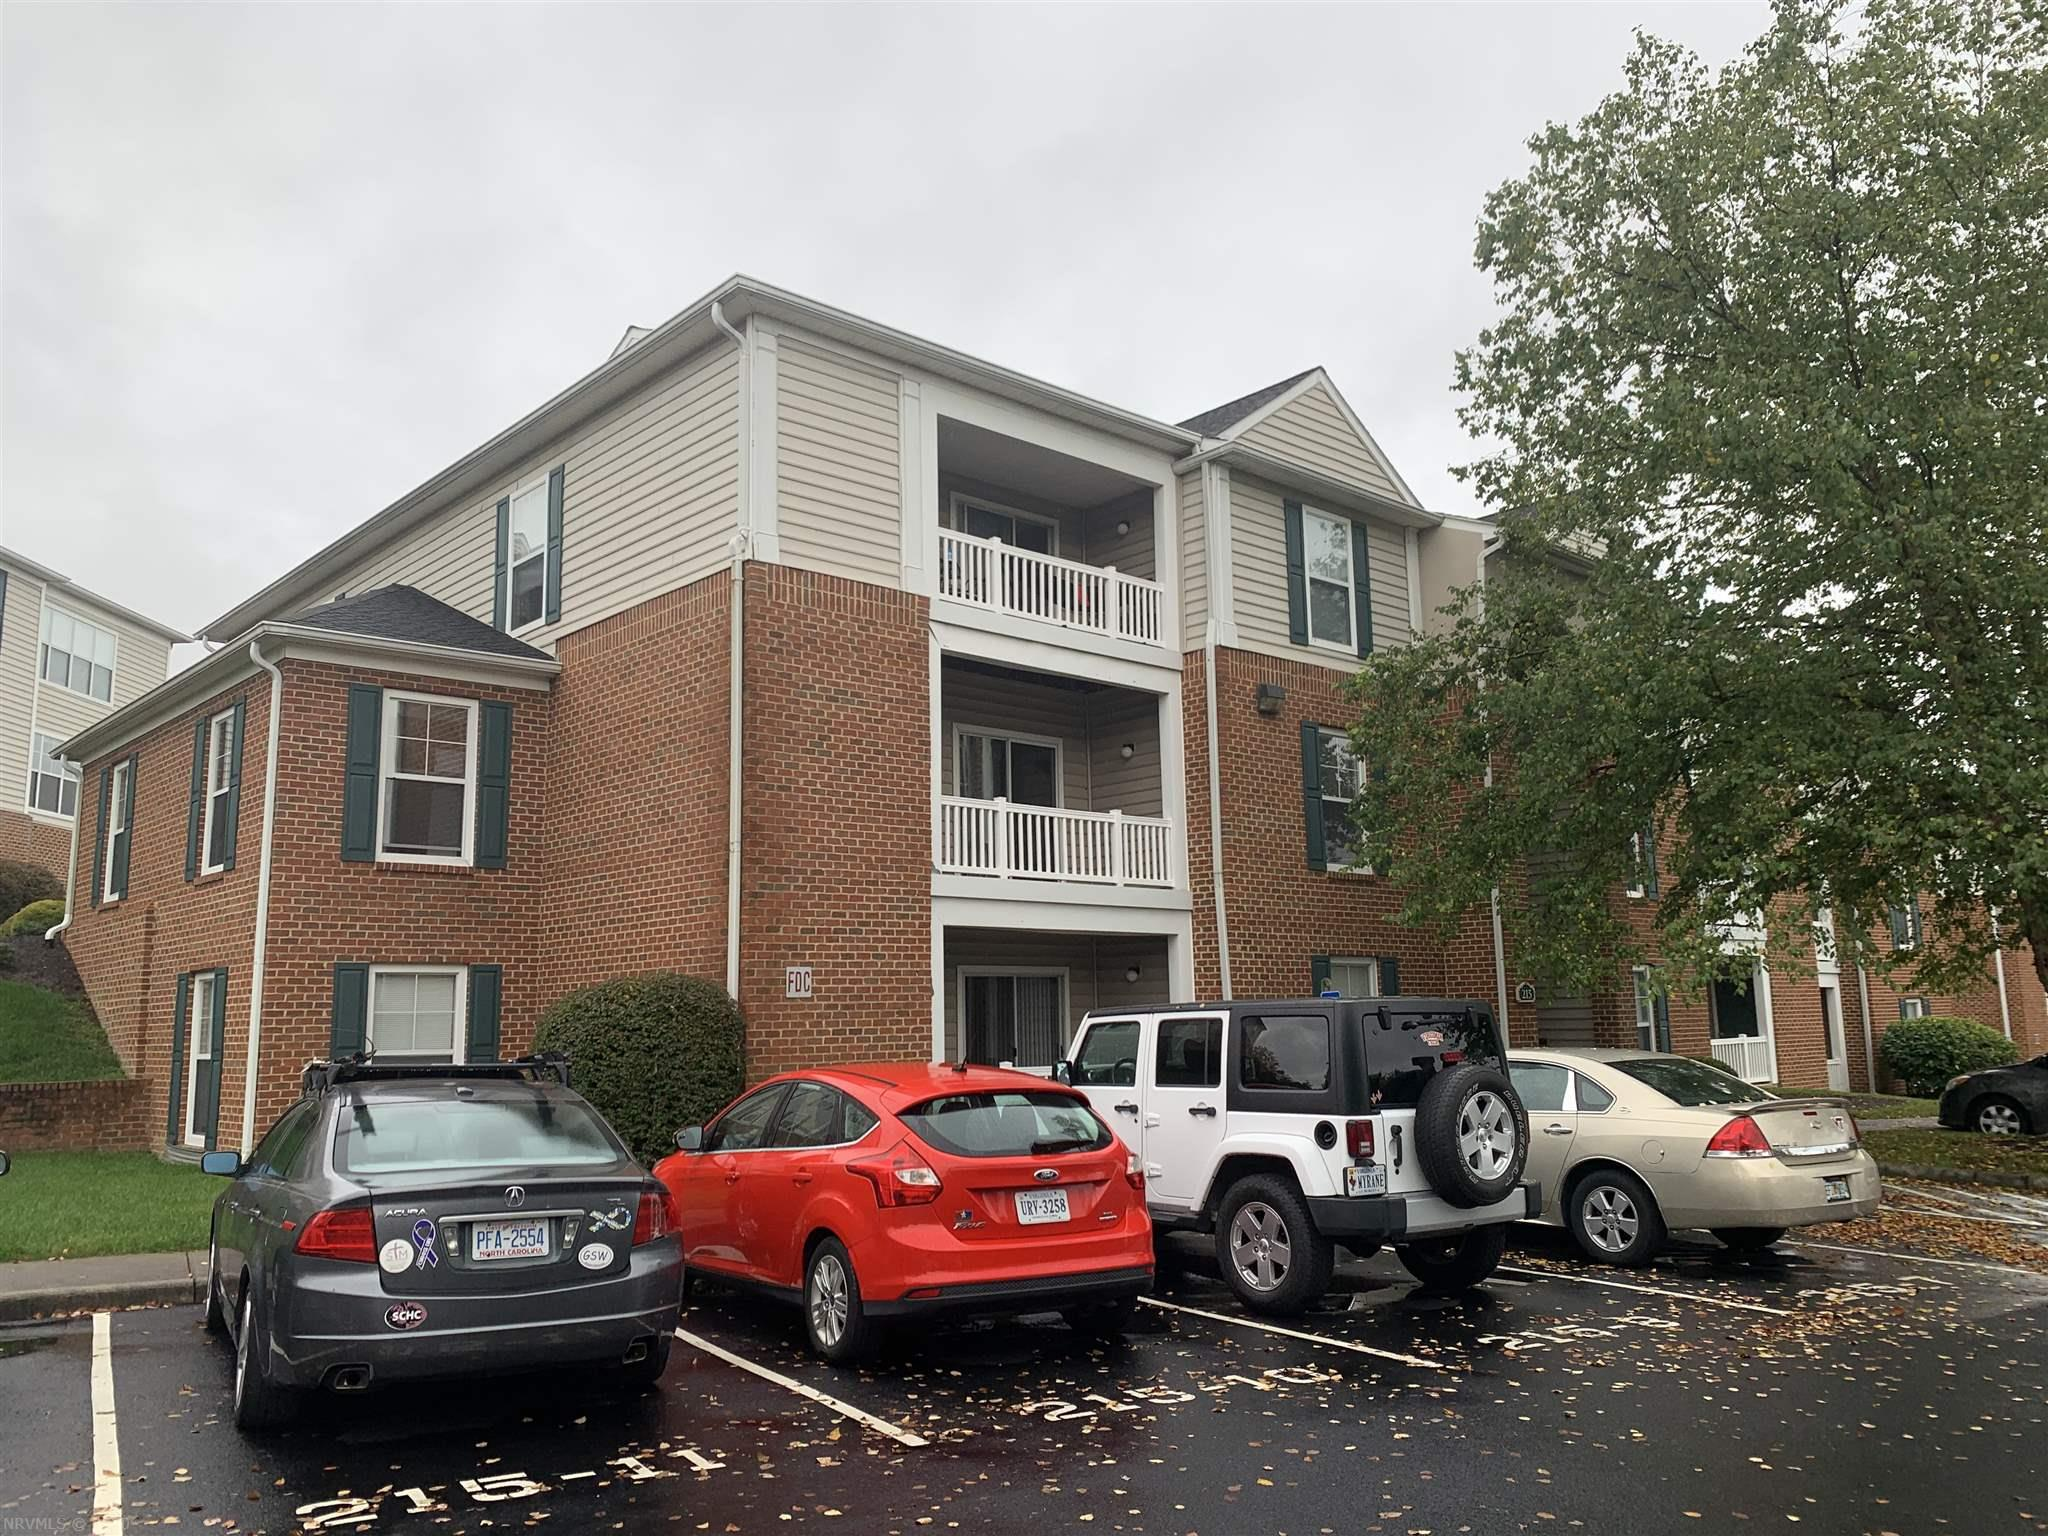 Highly desirable two bedroom two bathroom Knollwood condo in pristine condition being offered for the first time by the original developer. This unit is in very close proximity to the VT Corporate Research Center and across the street from VCOM. This is the opportunity you've been waiting for!  Currently leased through July 2021.